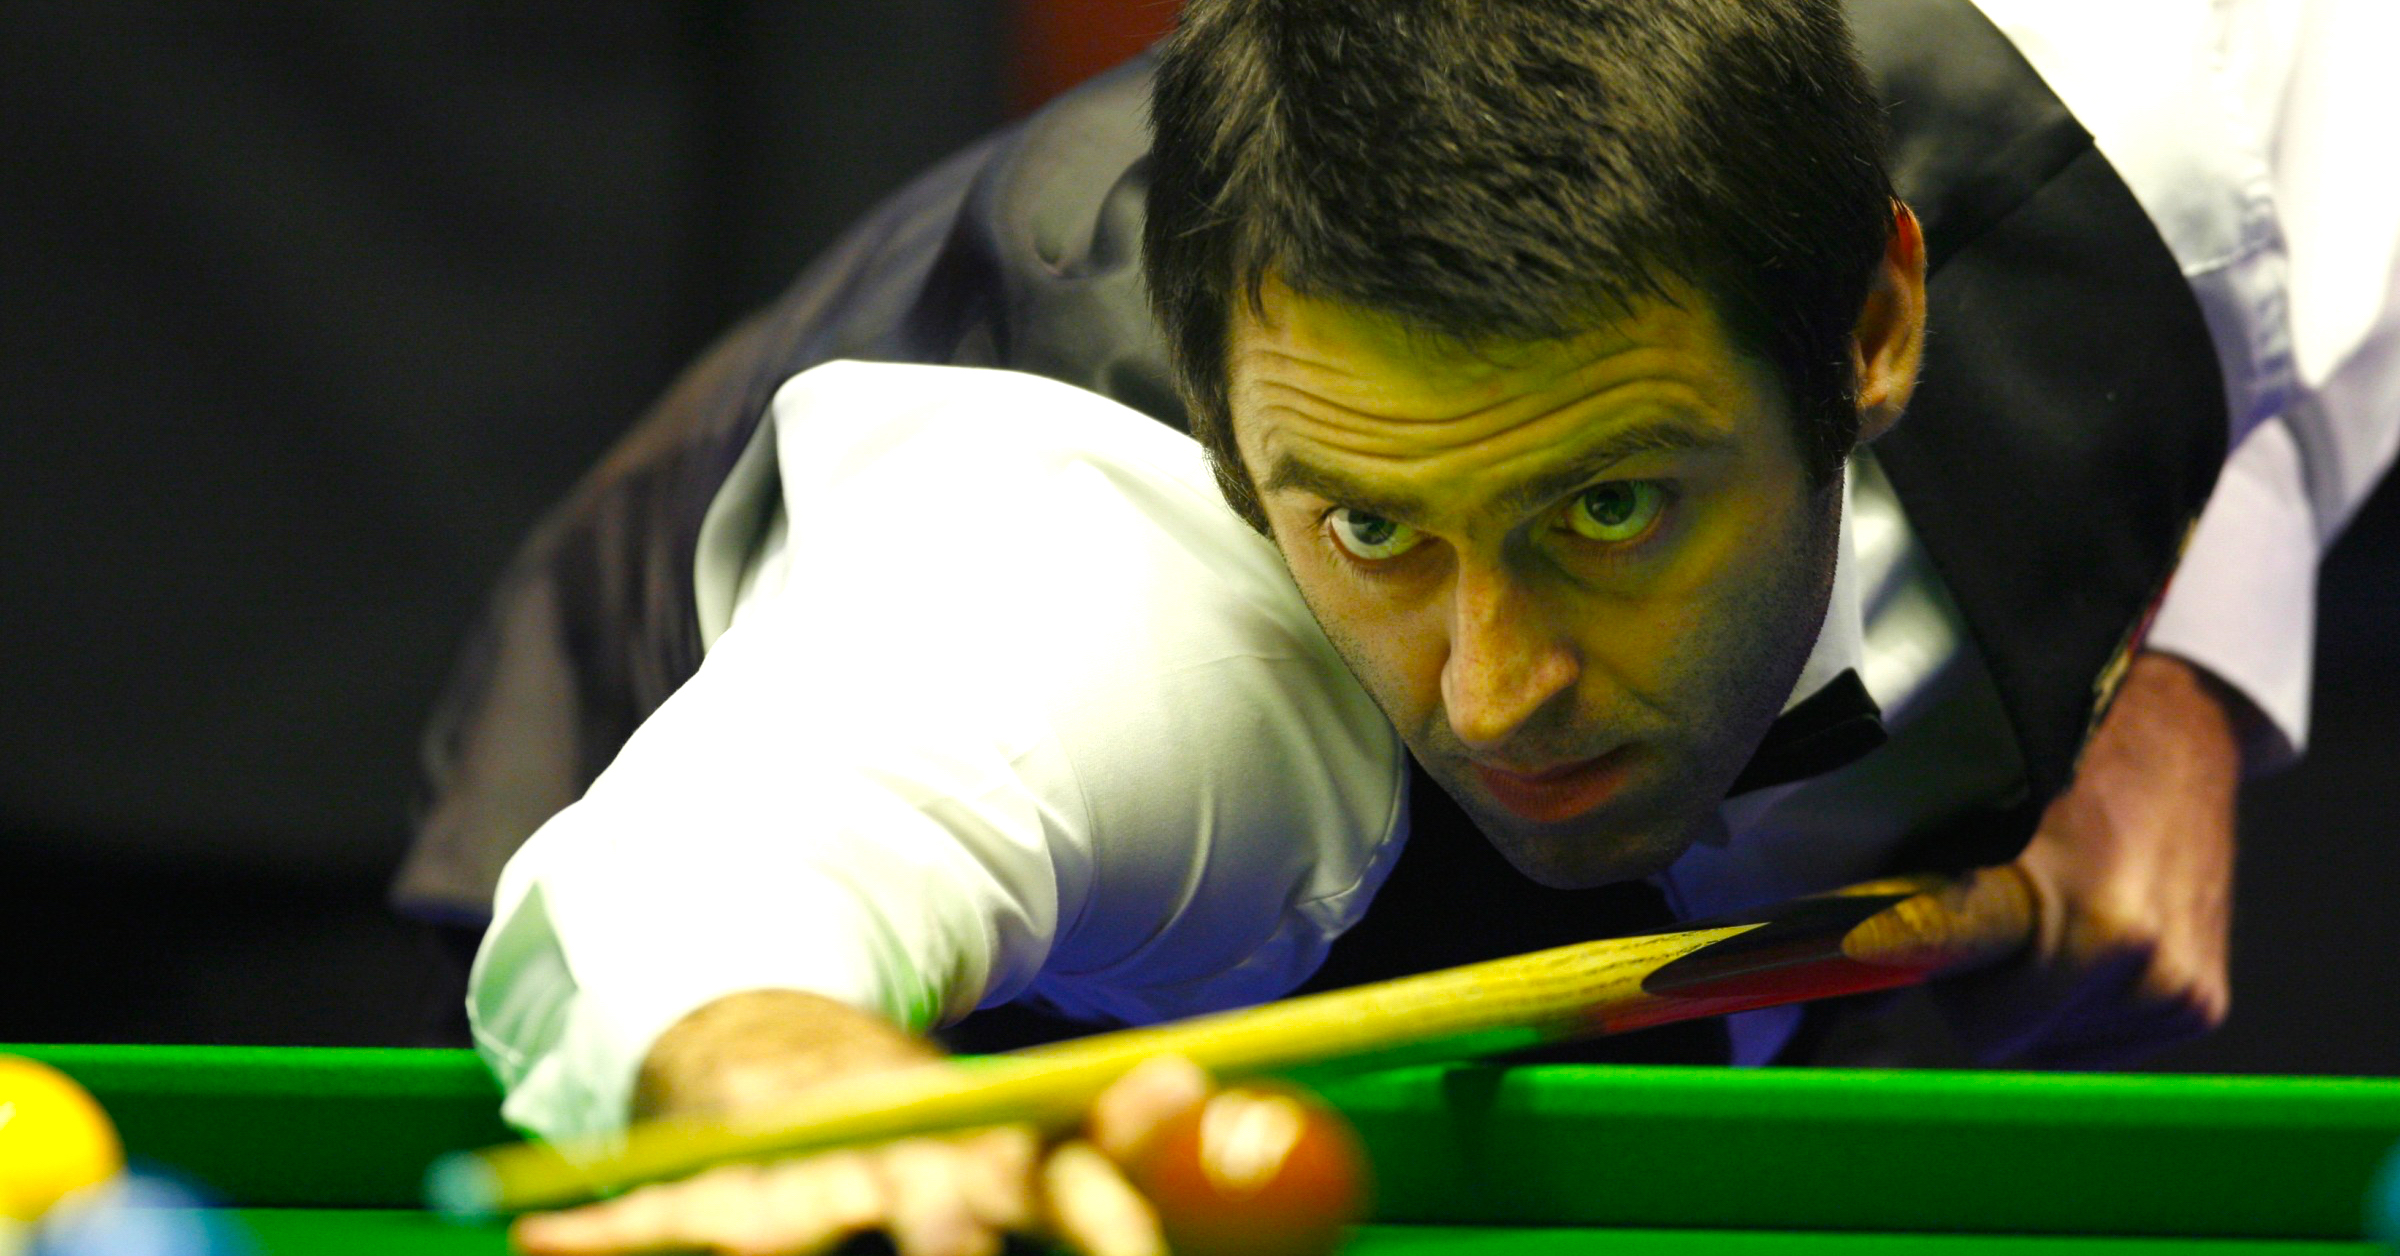 CLASSIC: Ronnie O'Sullivan Scores 147 After Asking Referee What The Prize Pot Was